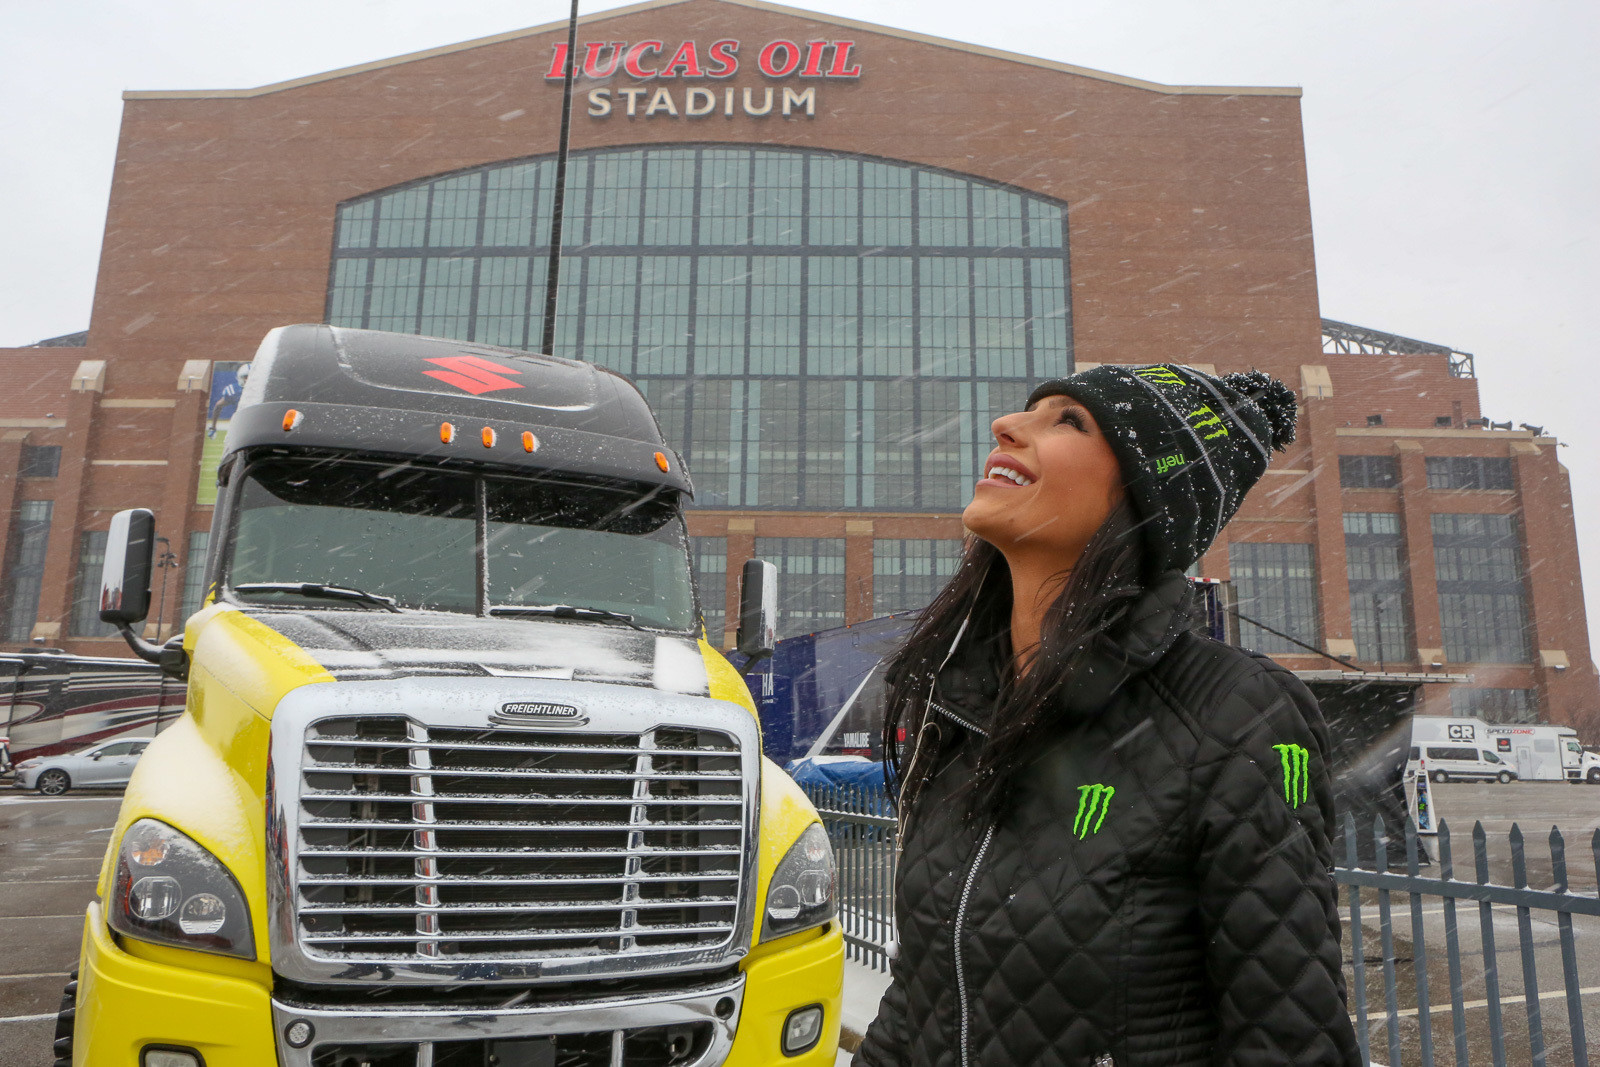 Kelly Cleland checking out the snow in the morning before practice got started. With inclement weather forecast for the day, the pits here were closed. Riders and teams either hunkered down in their rigs (with no awnings set up), or set up pits in a large room in the stadium.